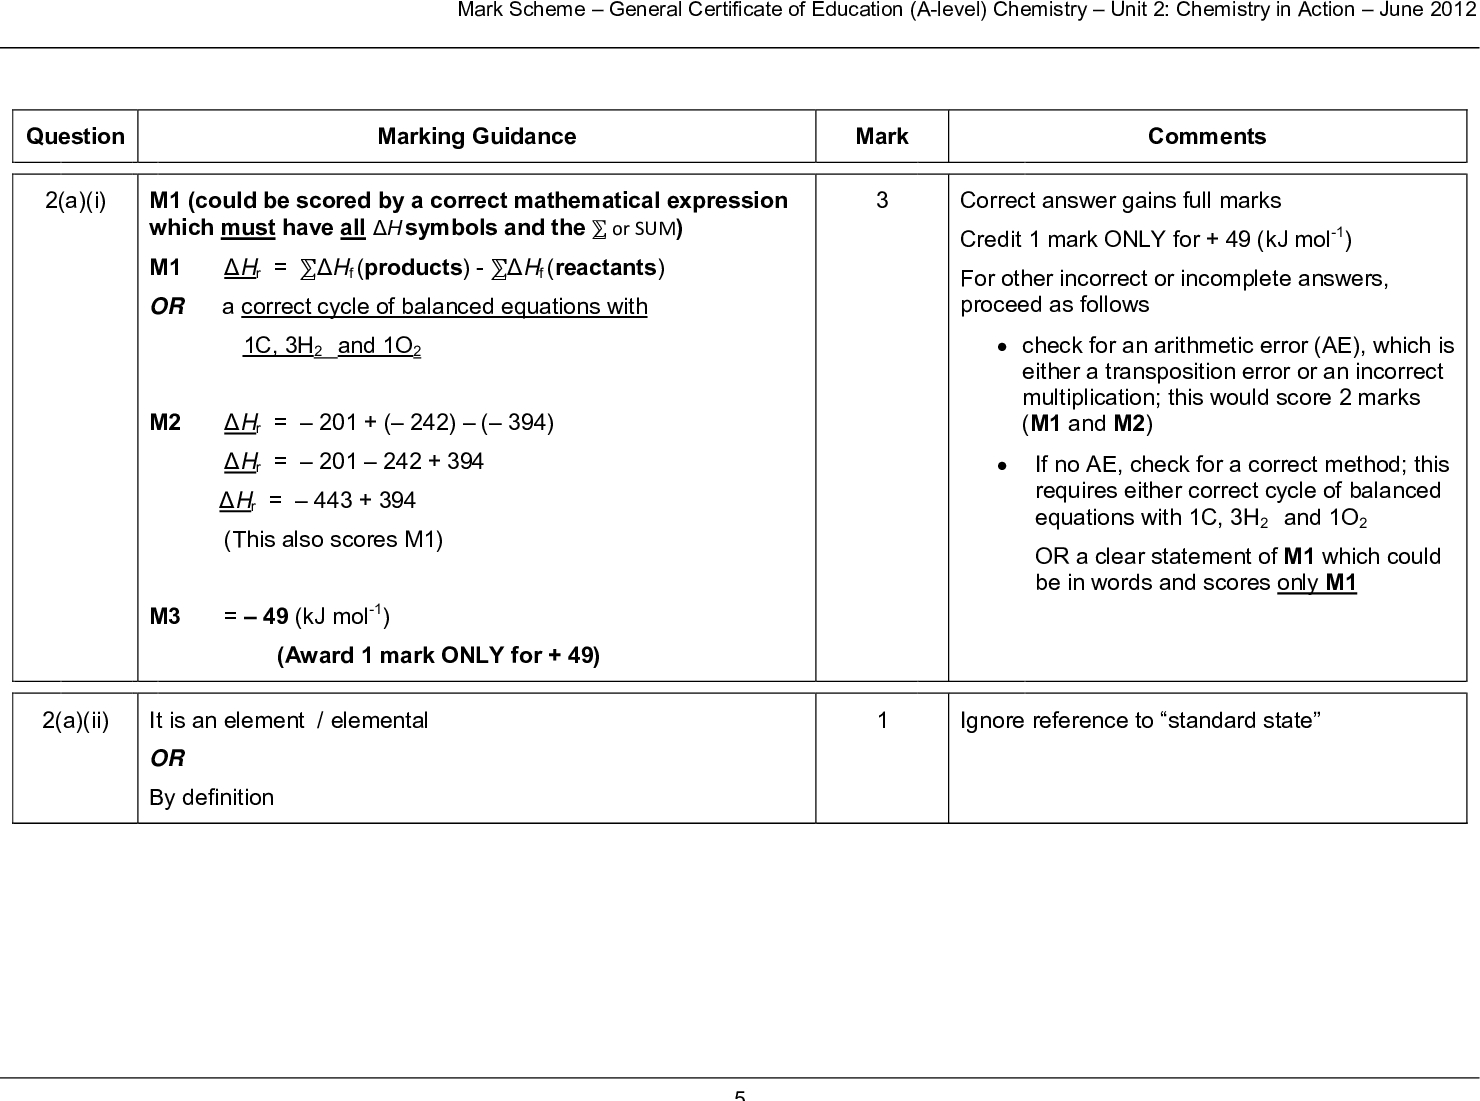 mark scheme general certificate of education a level chemistry unit chemistry in action june mark comments correct answer gains full marks credit mark only for kj mol for other incorrect or incomplete answers proceed as follows check for an arithmetic error ae which is either a transposition error or an incorrect multiplication this would score marks m and m if no ae check for a correct method this requires either correct cycle of balanced equations with c h and o or a clear statement of m which could be in words and scores only m ignore reference to standard state question marking guidance a i m could be scored by a correct mathematical expression which must have all h symbols and the or sum m hr hf products hf reactants or a correct cycle of balanced equations with c h and o m hr hr hr m kj mol award mark only for this also scores m a ii it is an element elemental or by definition mark scheme general certificate of education a level chemistry unit chemistry in action june b m the yield increases goes up gets more m there are more moles molecules of gas on the left of reactants or fewer moles molecules of gas on the right products or there are moles molecules of gas on the left and moles molecules on the right or equilibrium shifts moves to the side with less moles molecules m can only score m if m is correct the position of equilibrium shifts moves from left to right to oppose the increase in pressure if m is given as decreases no effect no change then ce for clip but mark on only m and m from a blank m ignore volumes particles atoms and species for m for m not simply to oppose the change for m credit the equilibrium shifts moves to right to lower decrease the pressure there must be a specific reference to the change that is opposed c mark scheme general certificate of education a level chemistry unit chemistry in action june if m is given as decrease no effect no change then ce for clip but mark on only m and m from a blank m for m not simply to oppose the change